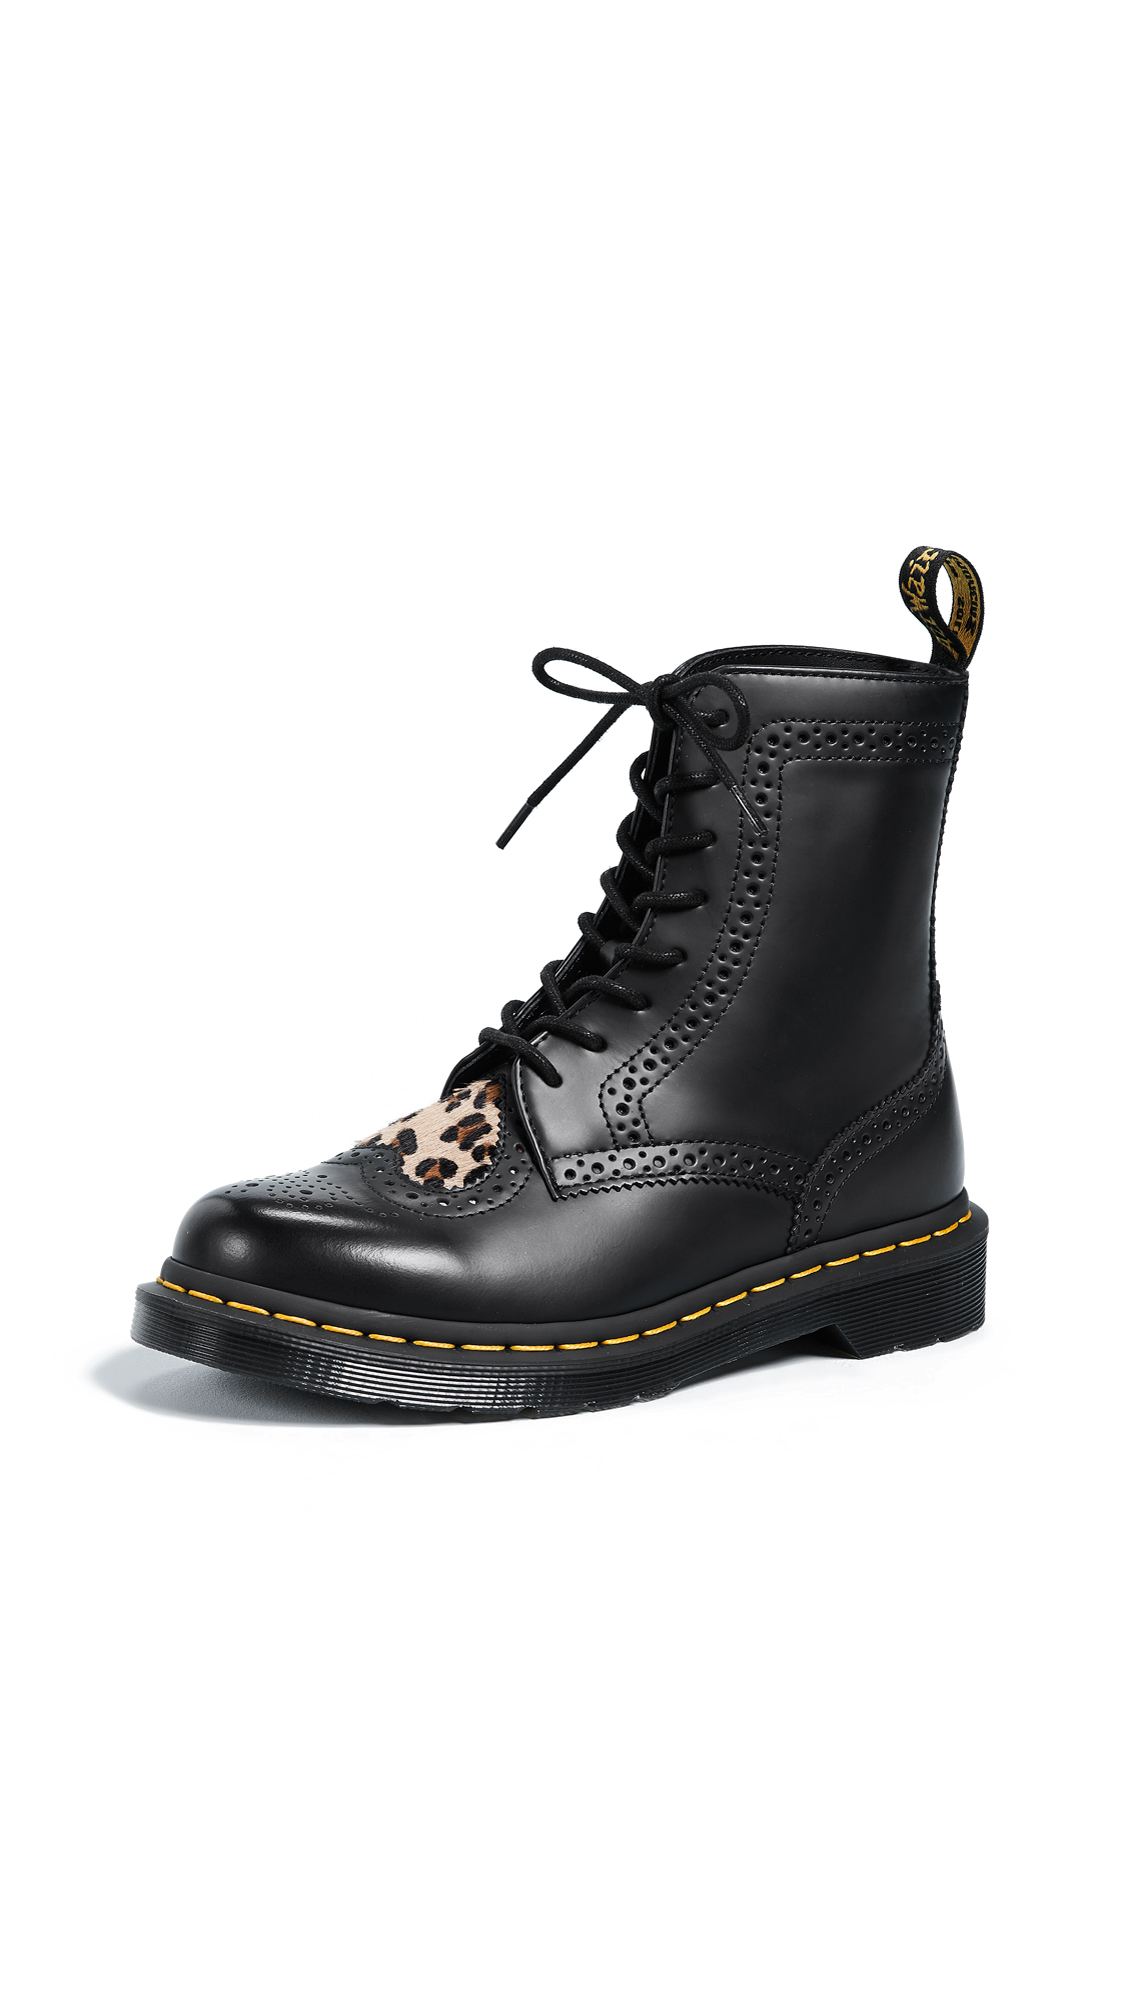 Dr. Martens Bentley II HRT Brogue Boots - Black/Medium Leopard